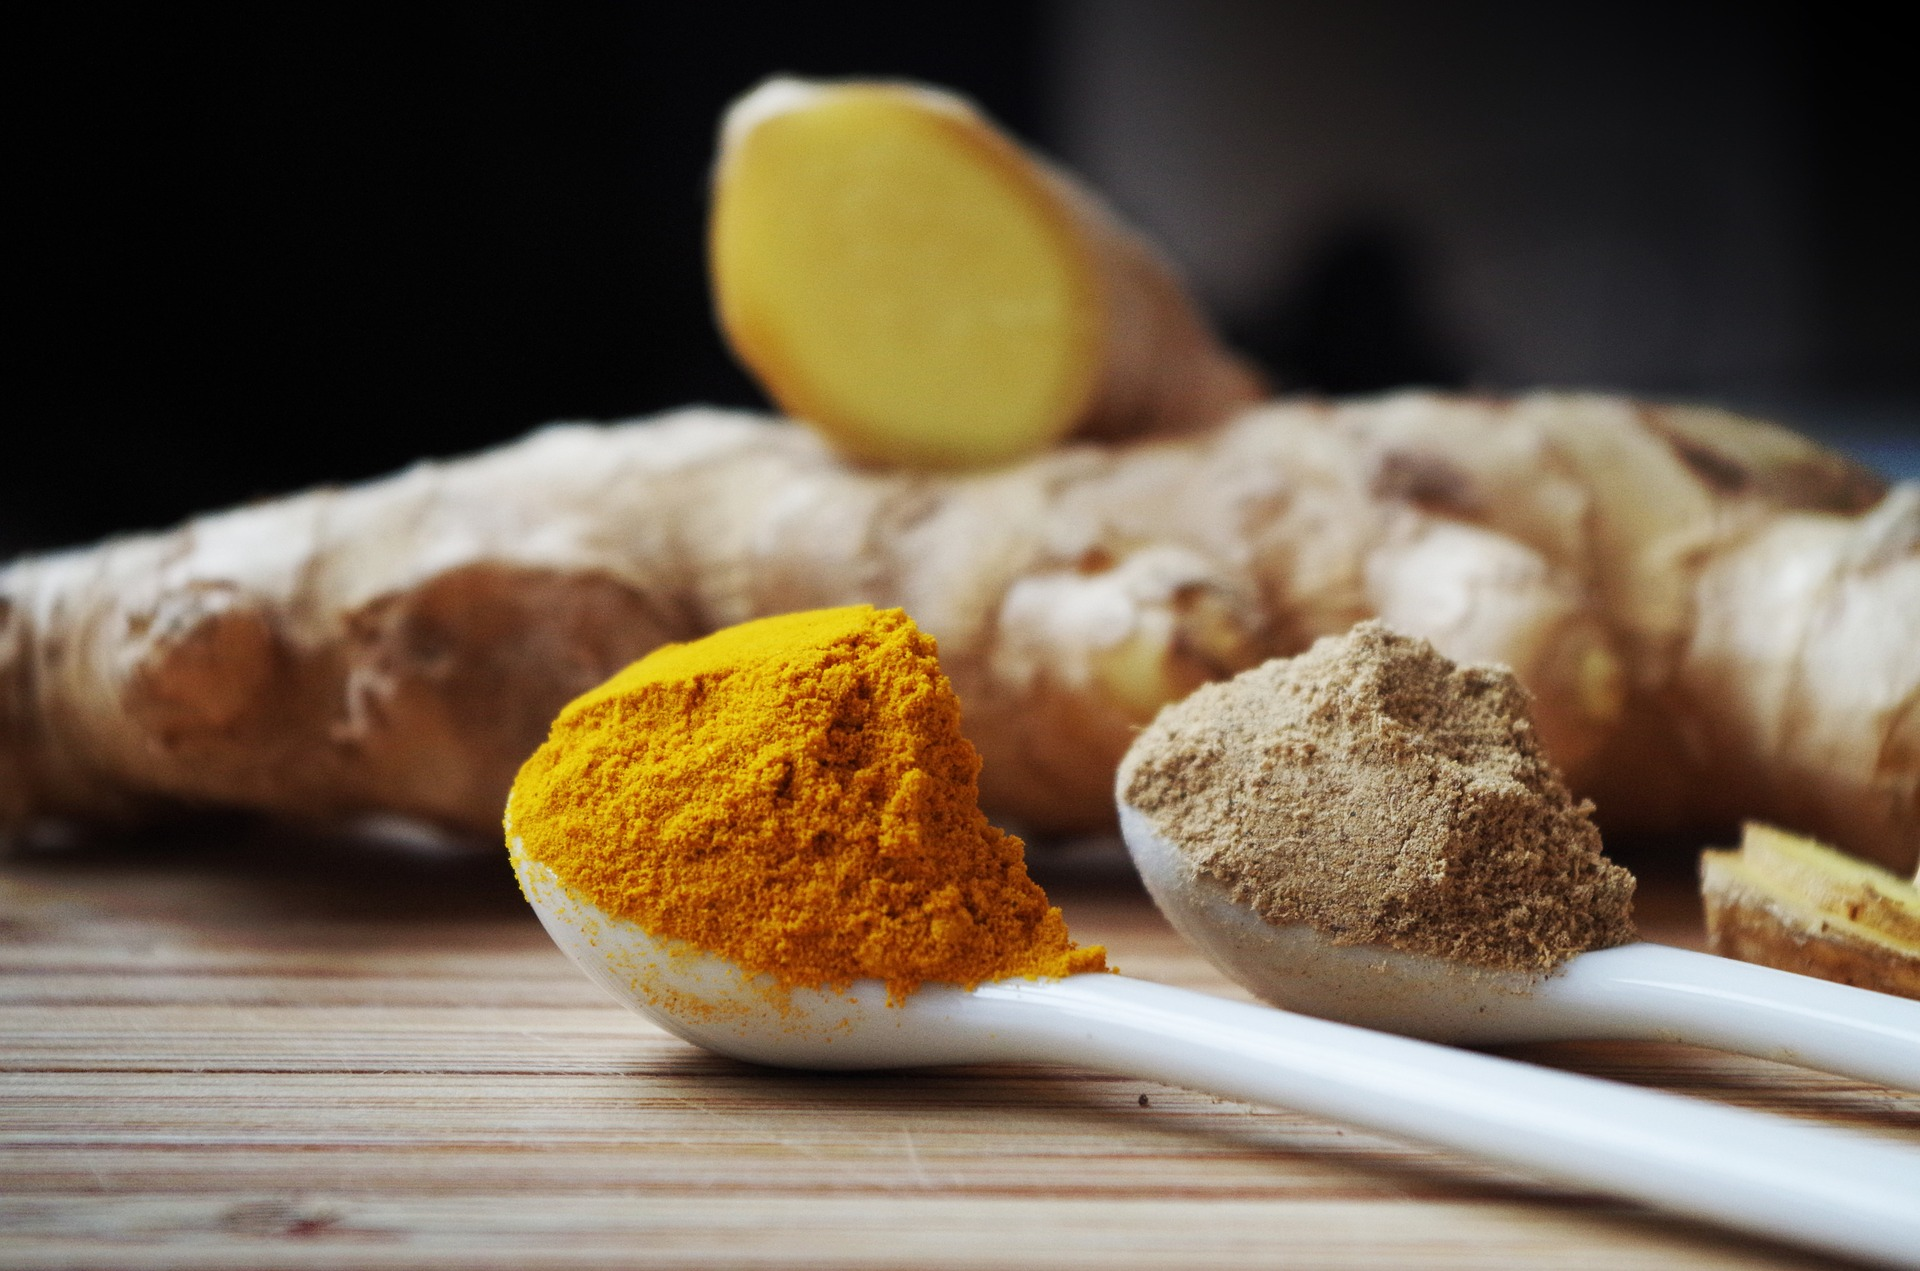 Best Turmeric Supplements of 2020: The ultimate guide